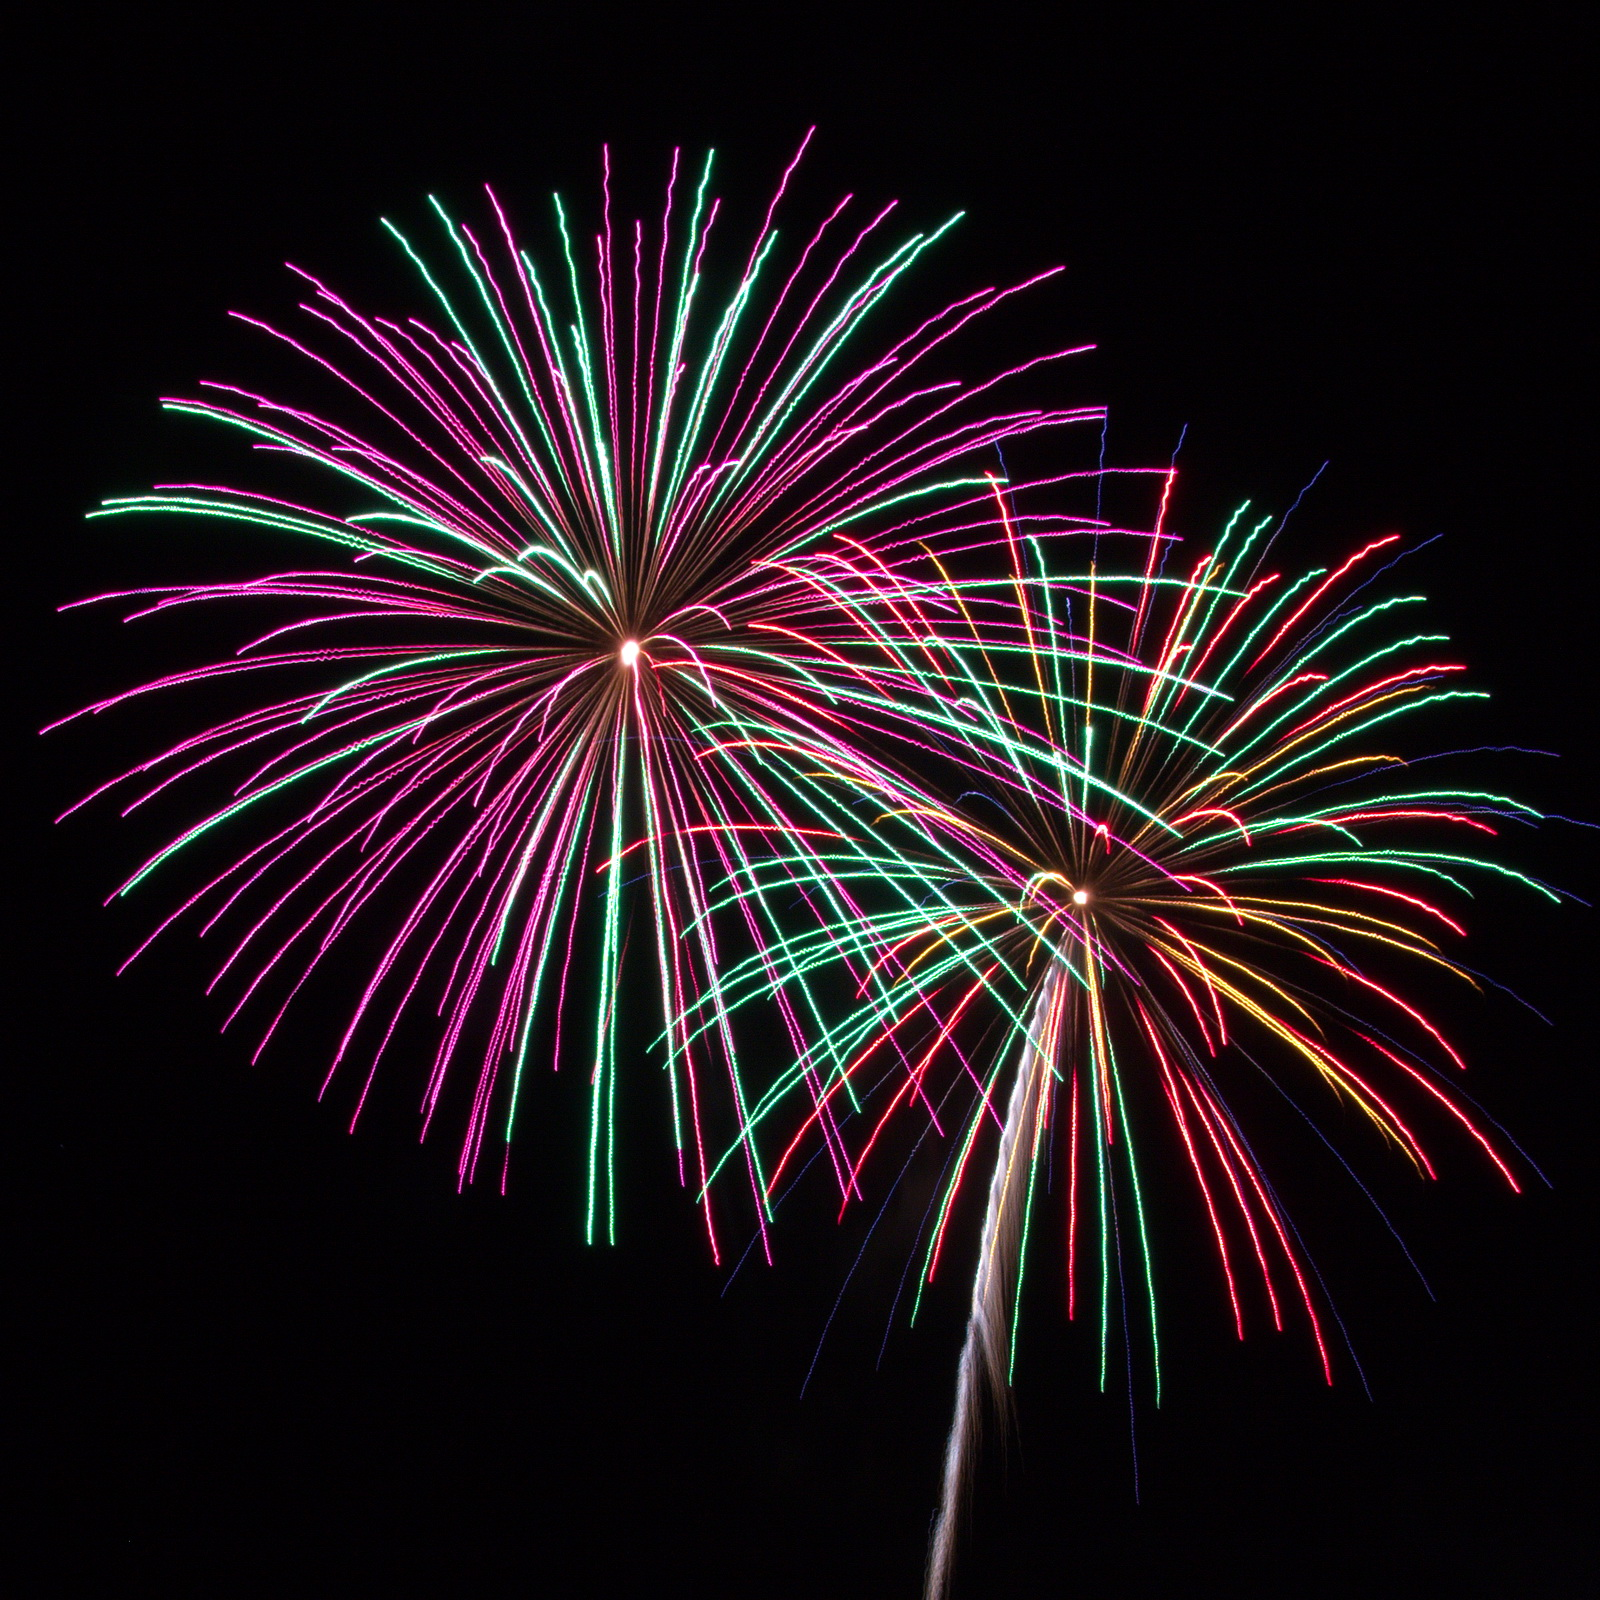 Massachusetts Fireworks: purple and mint green with yellow